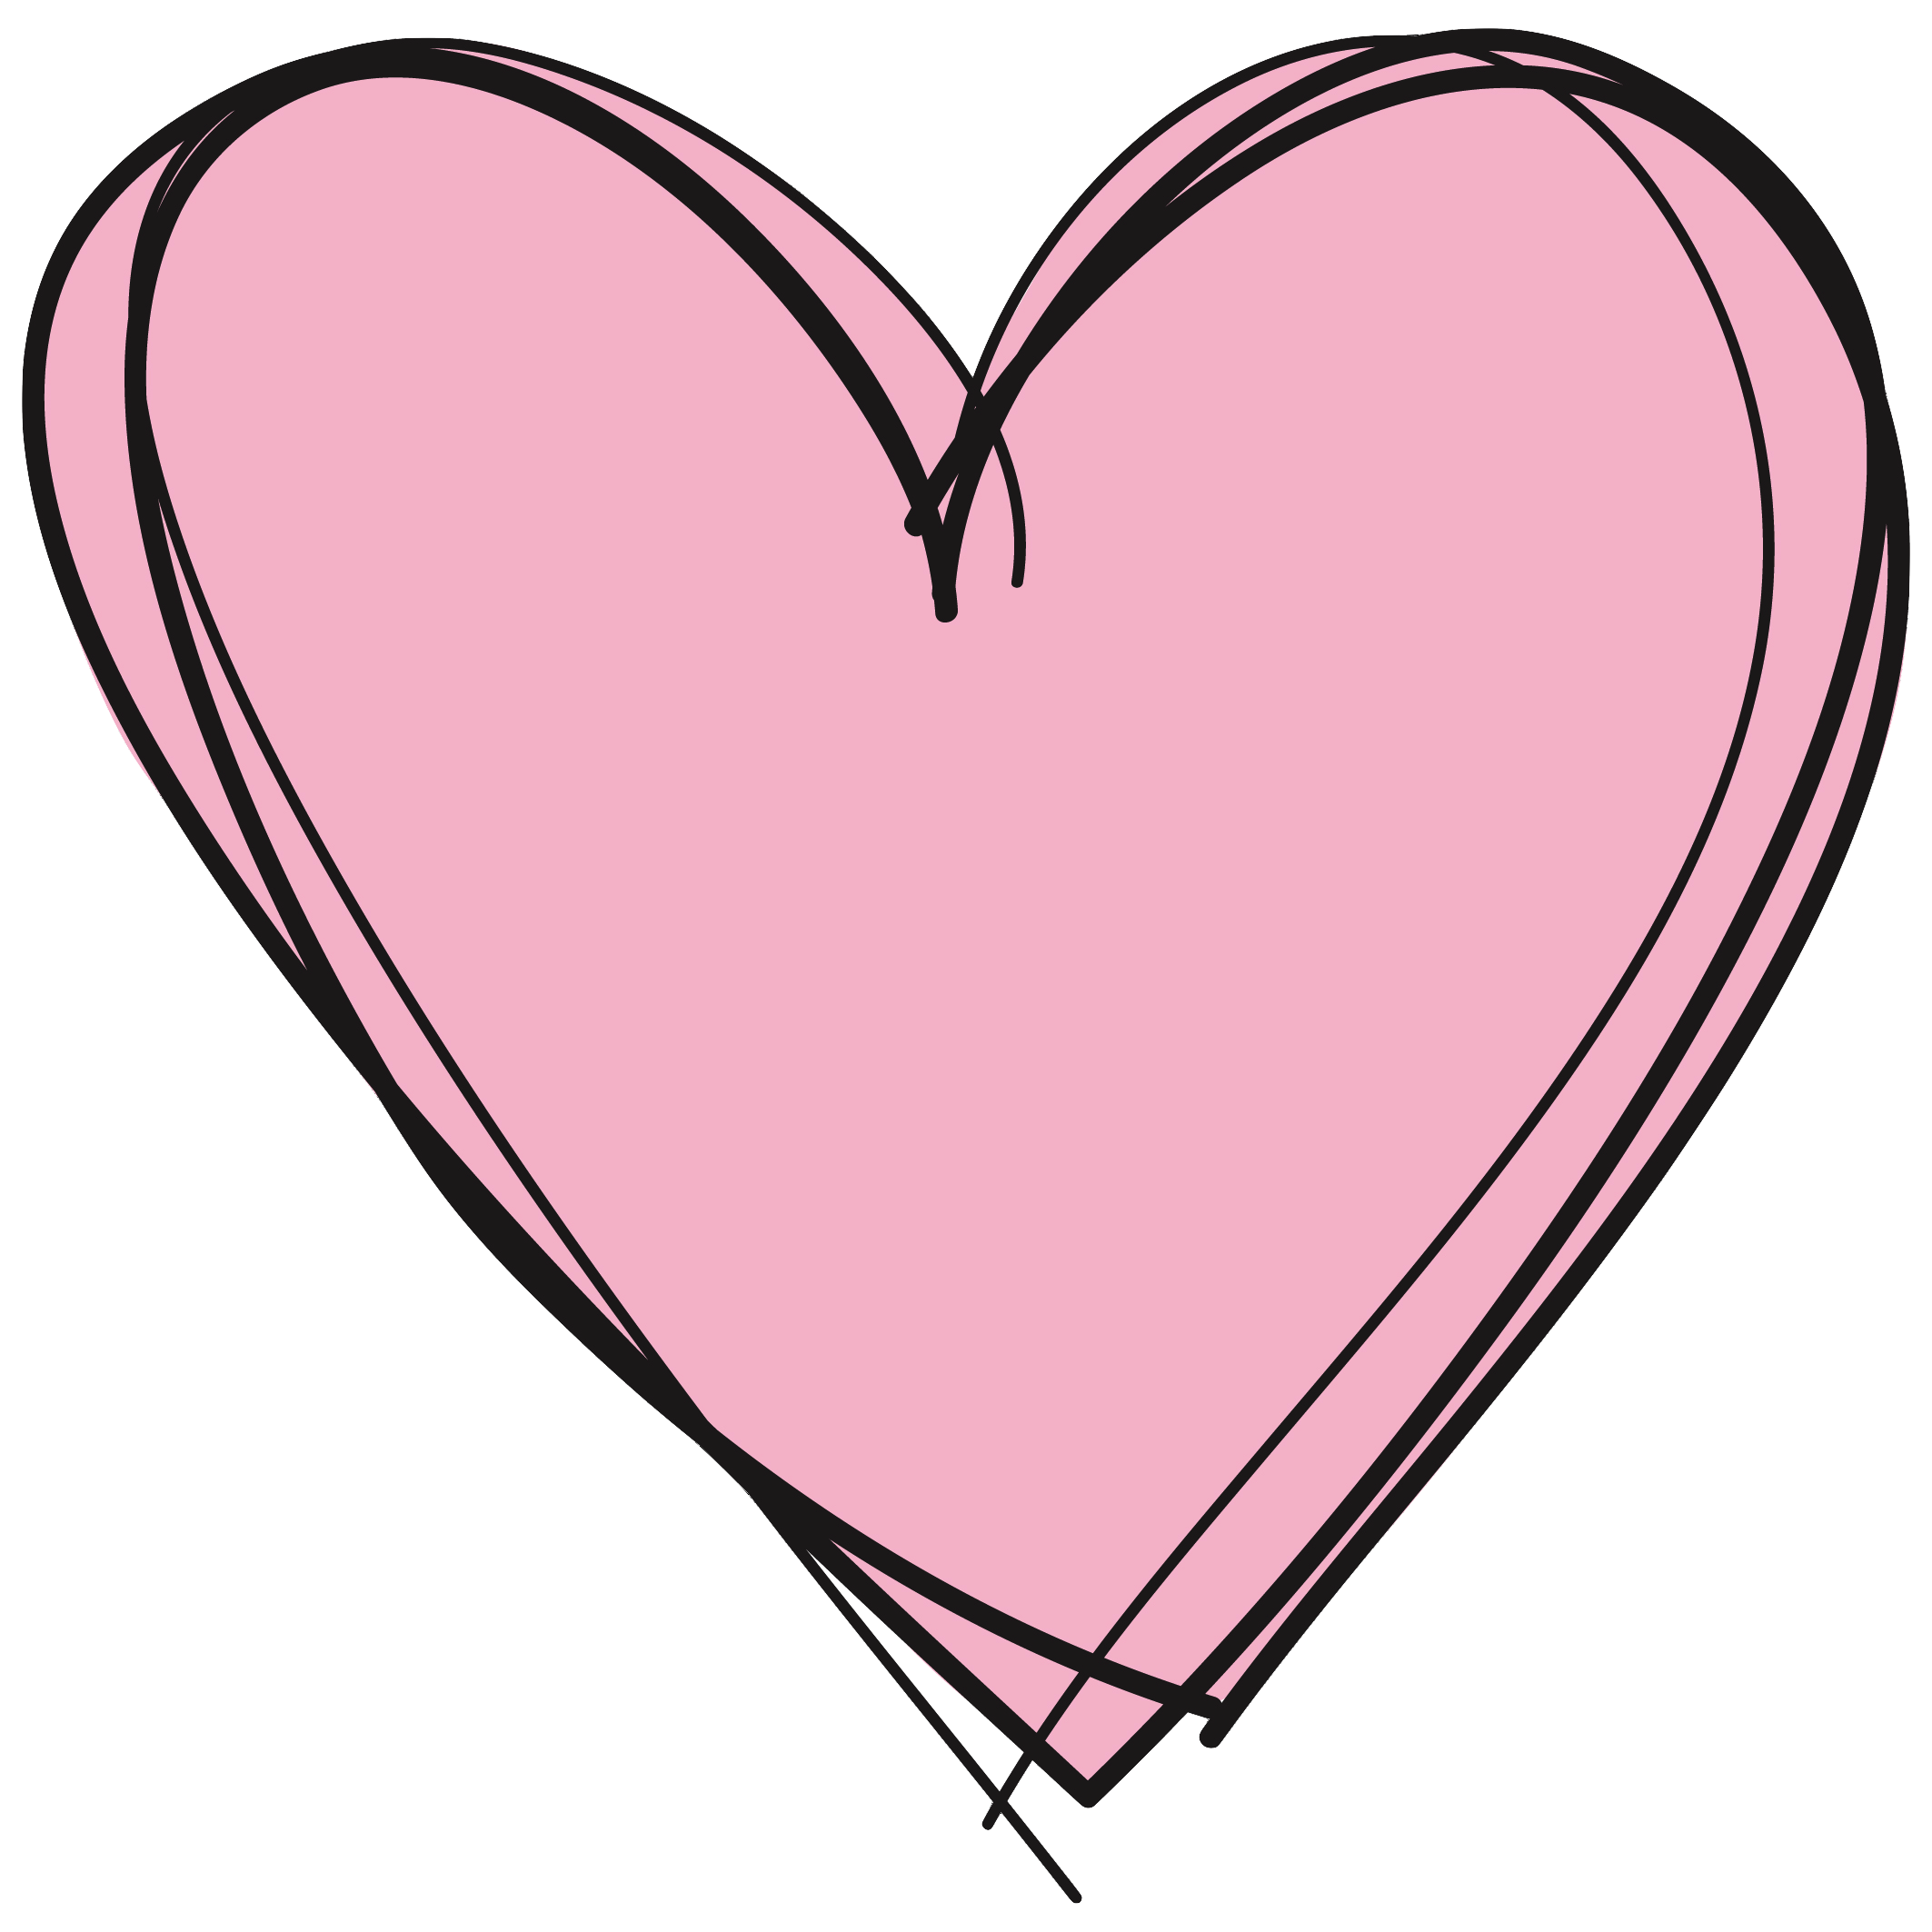 Heels clipart tumblr transparent. Hearts in a row